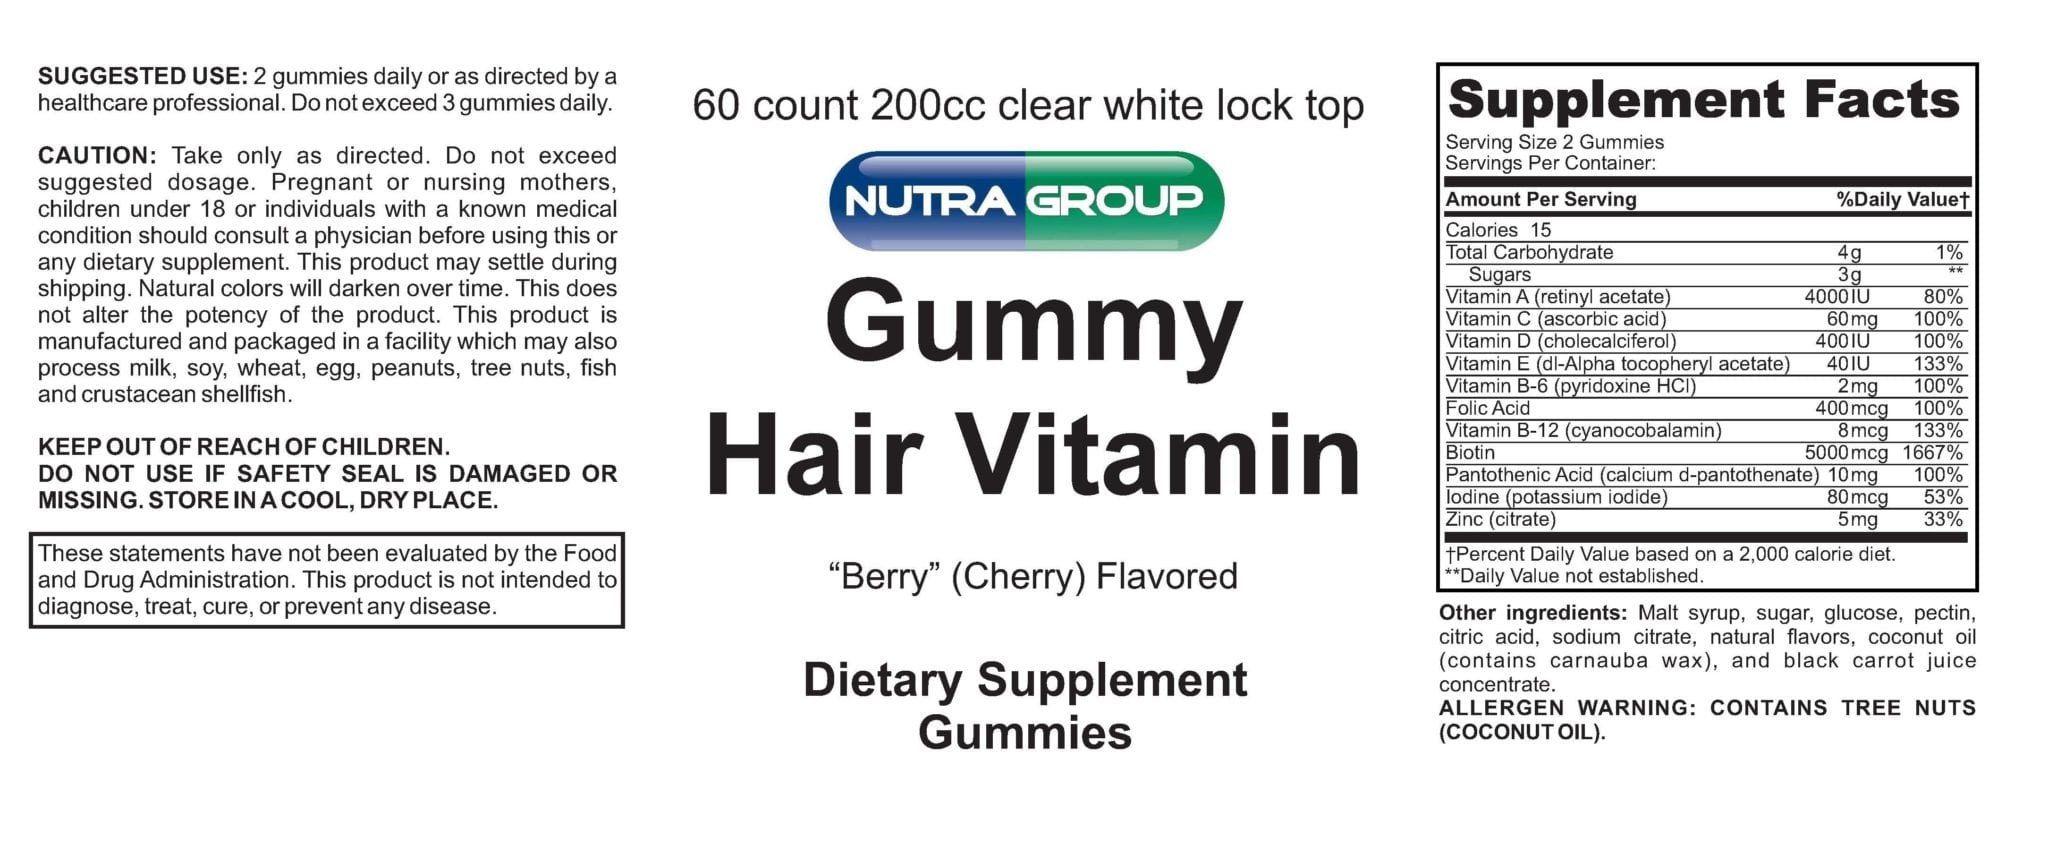 Gummy Hair Vitamin For Private Label